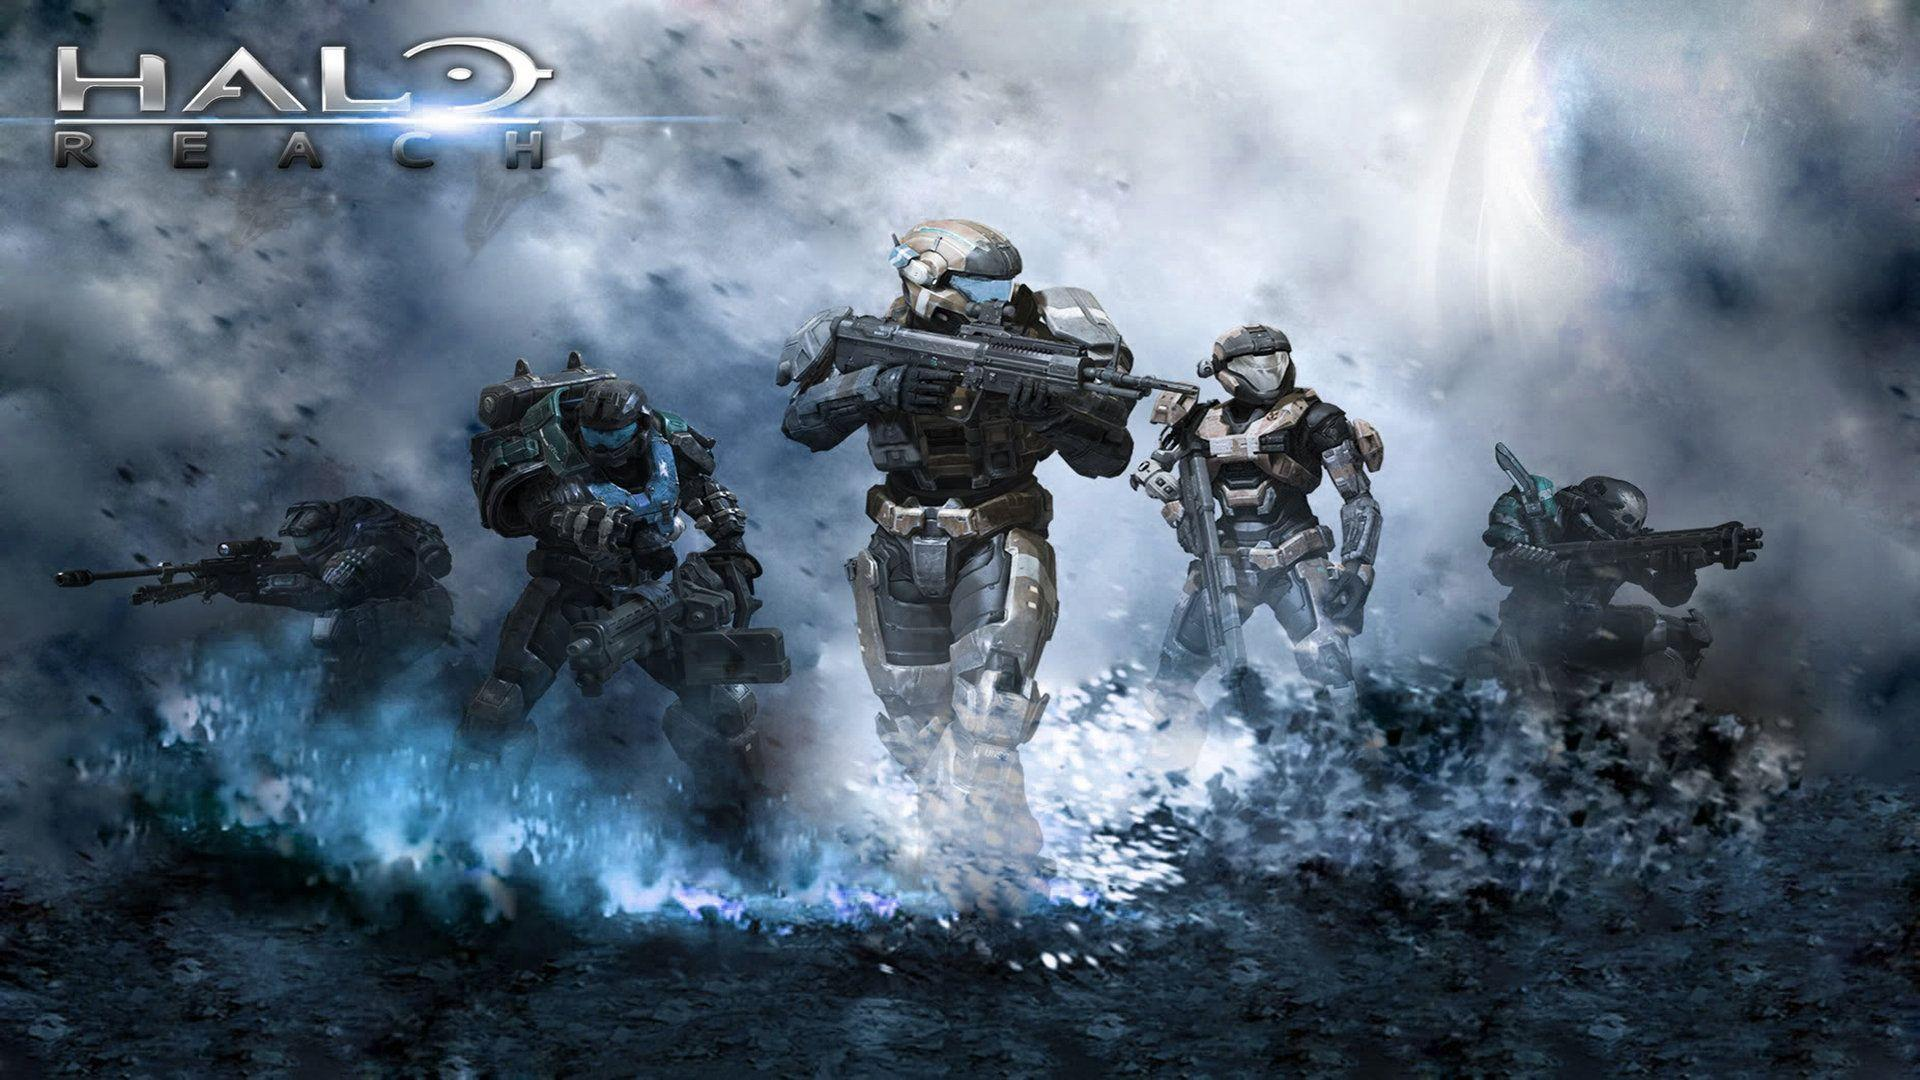 HD Halo Wallpapers 1920x1080